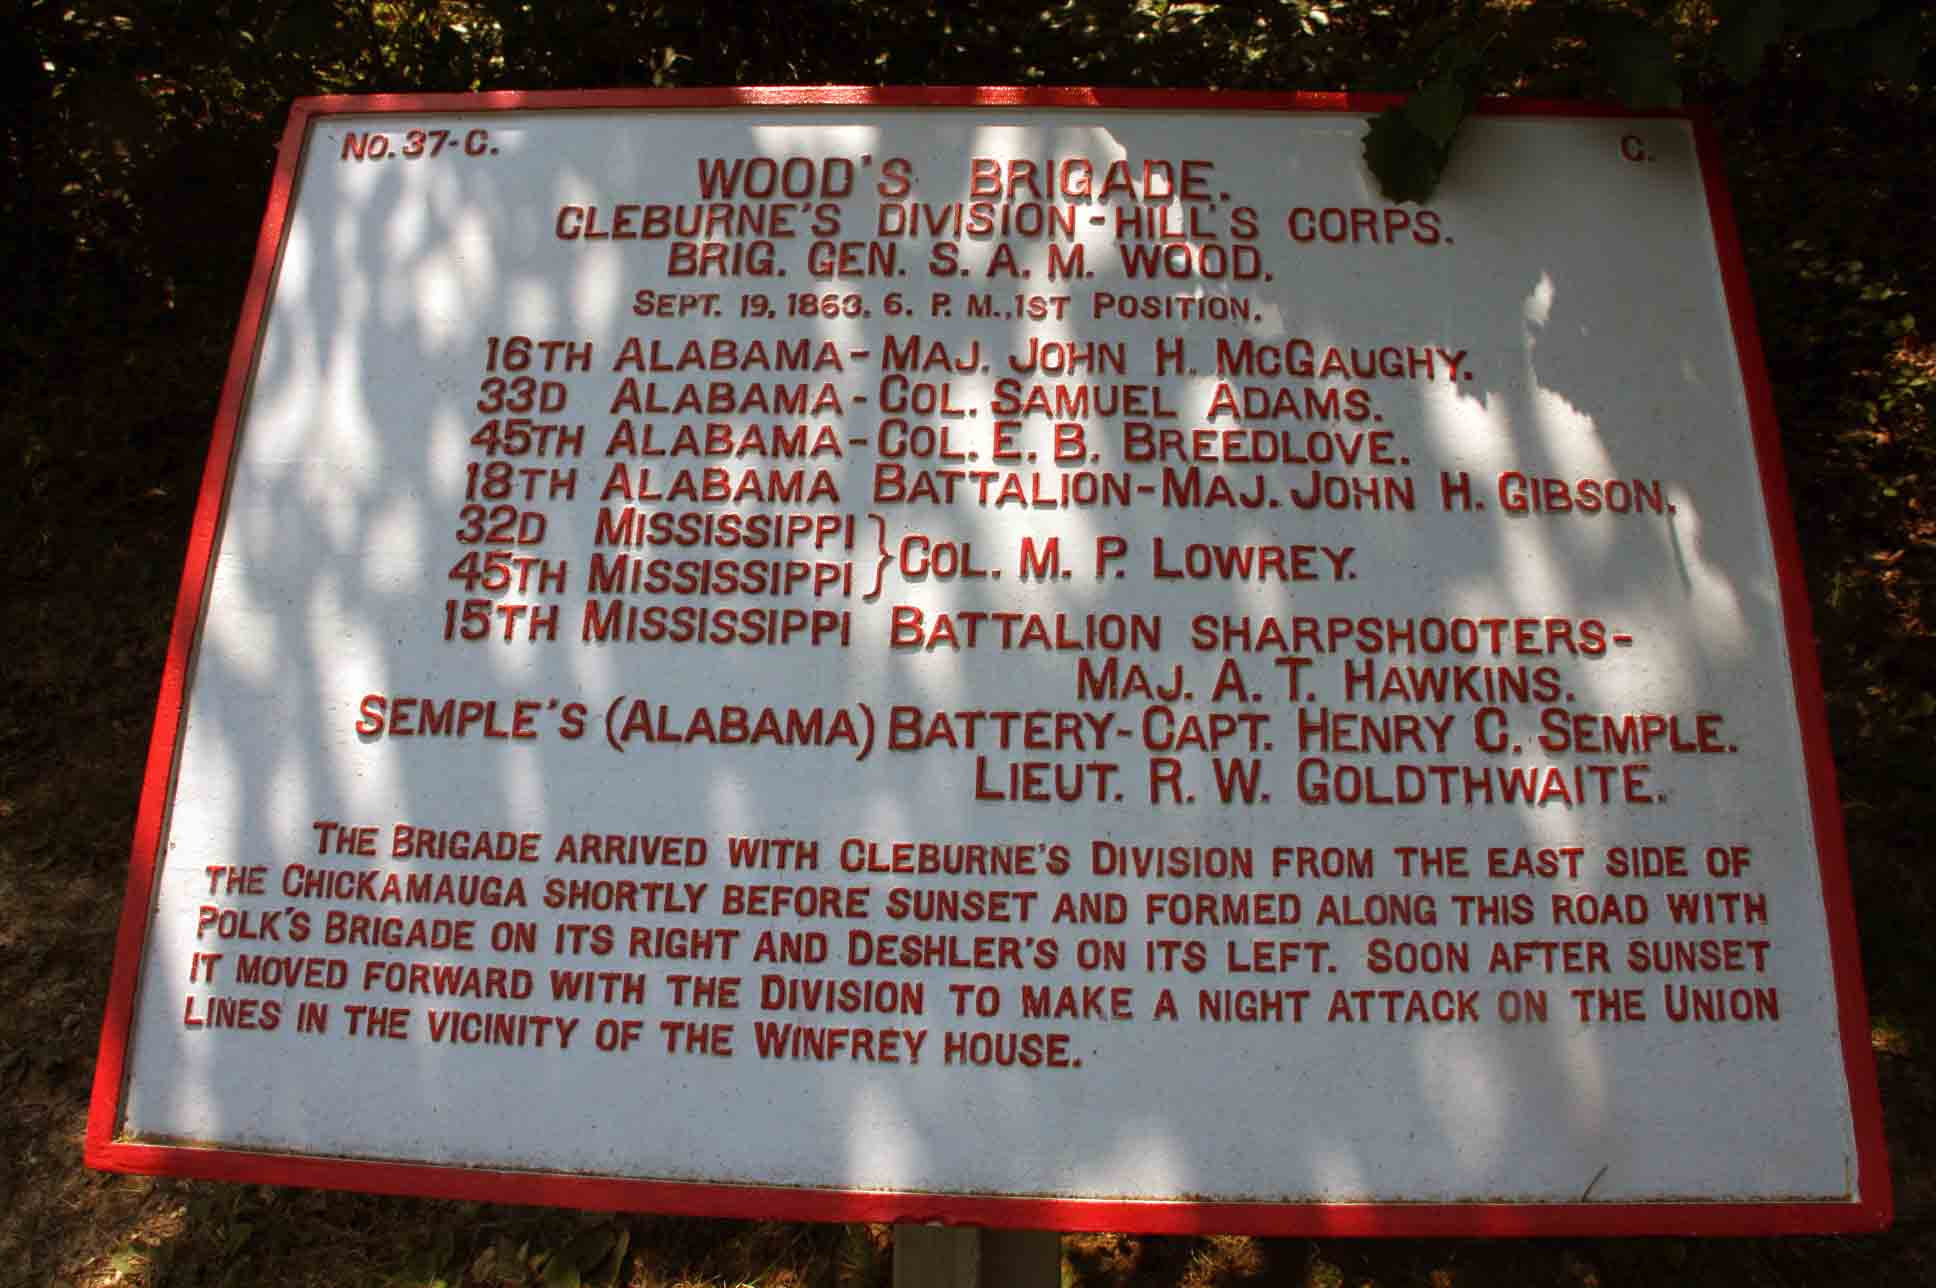 Wood's Brigade Tablet, click photo to enlarge.